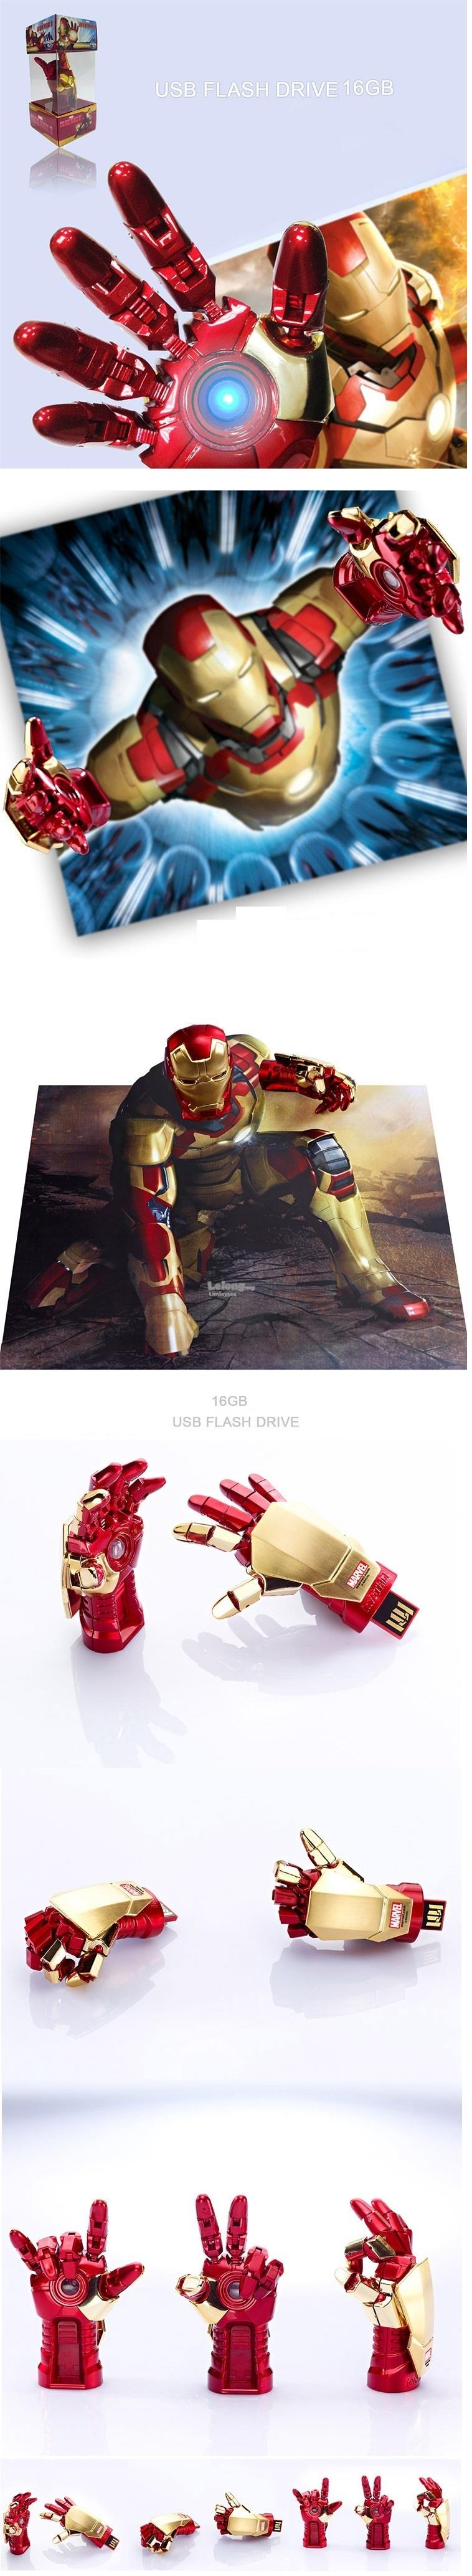 IRONMAN HAND Flash Drive 16GB LED USB